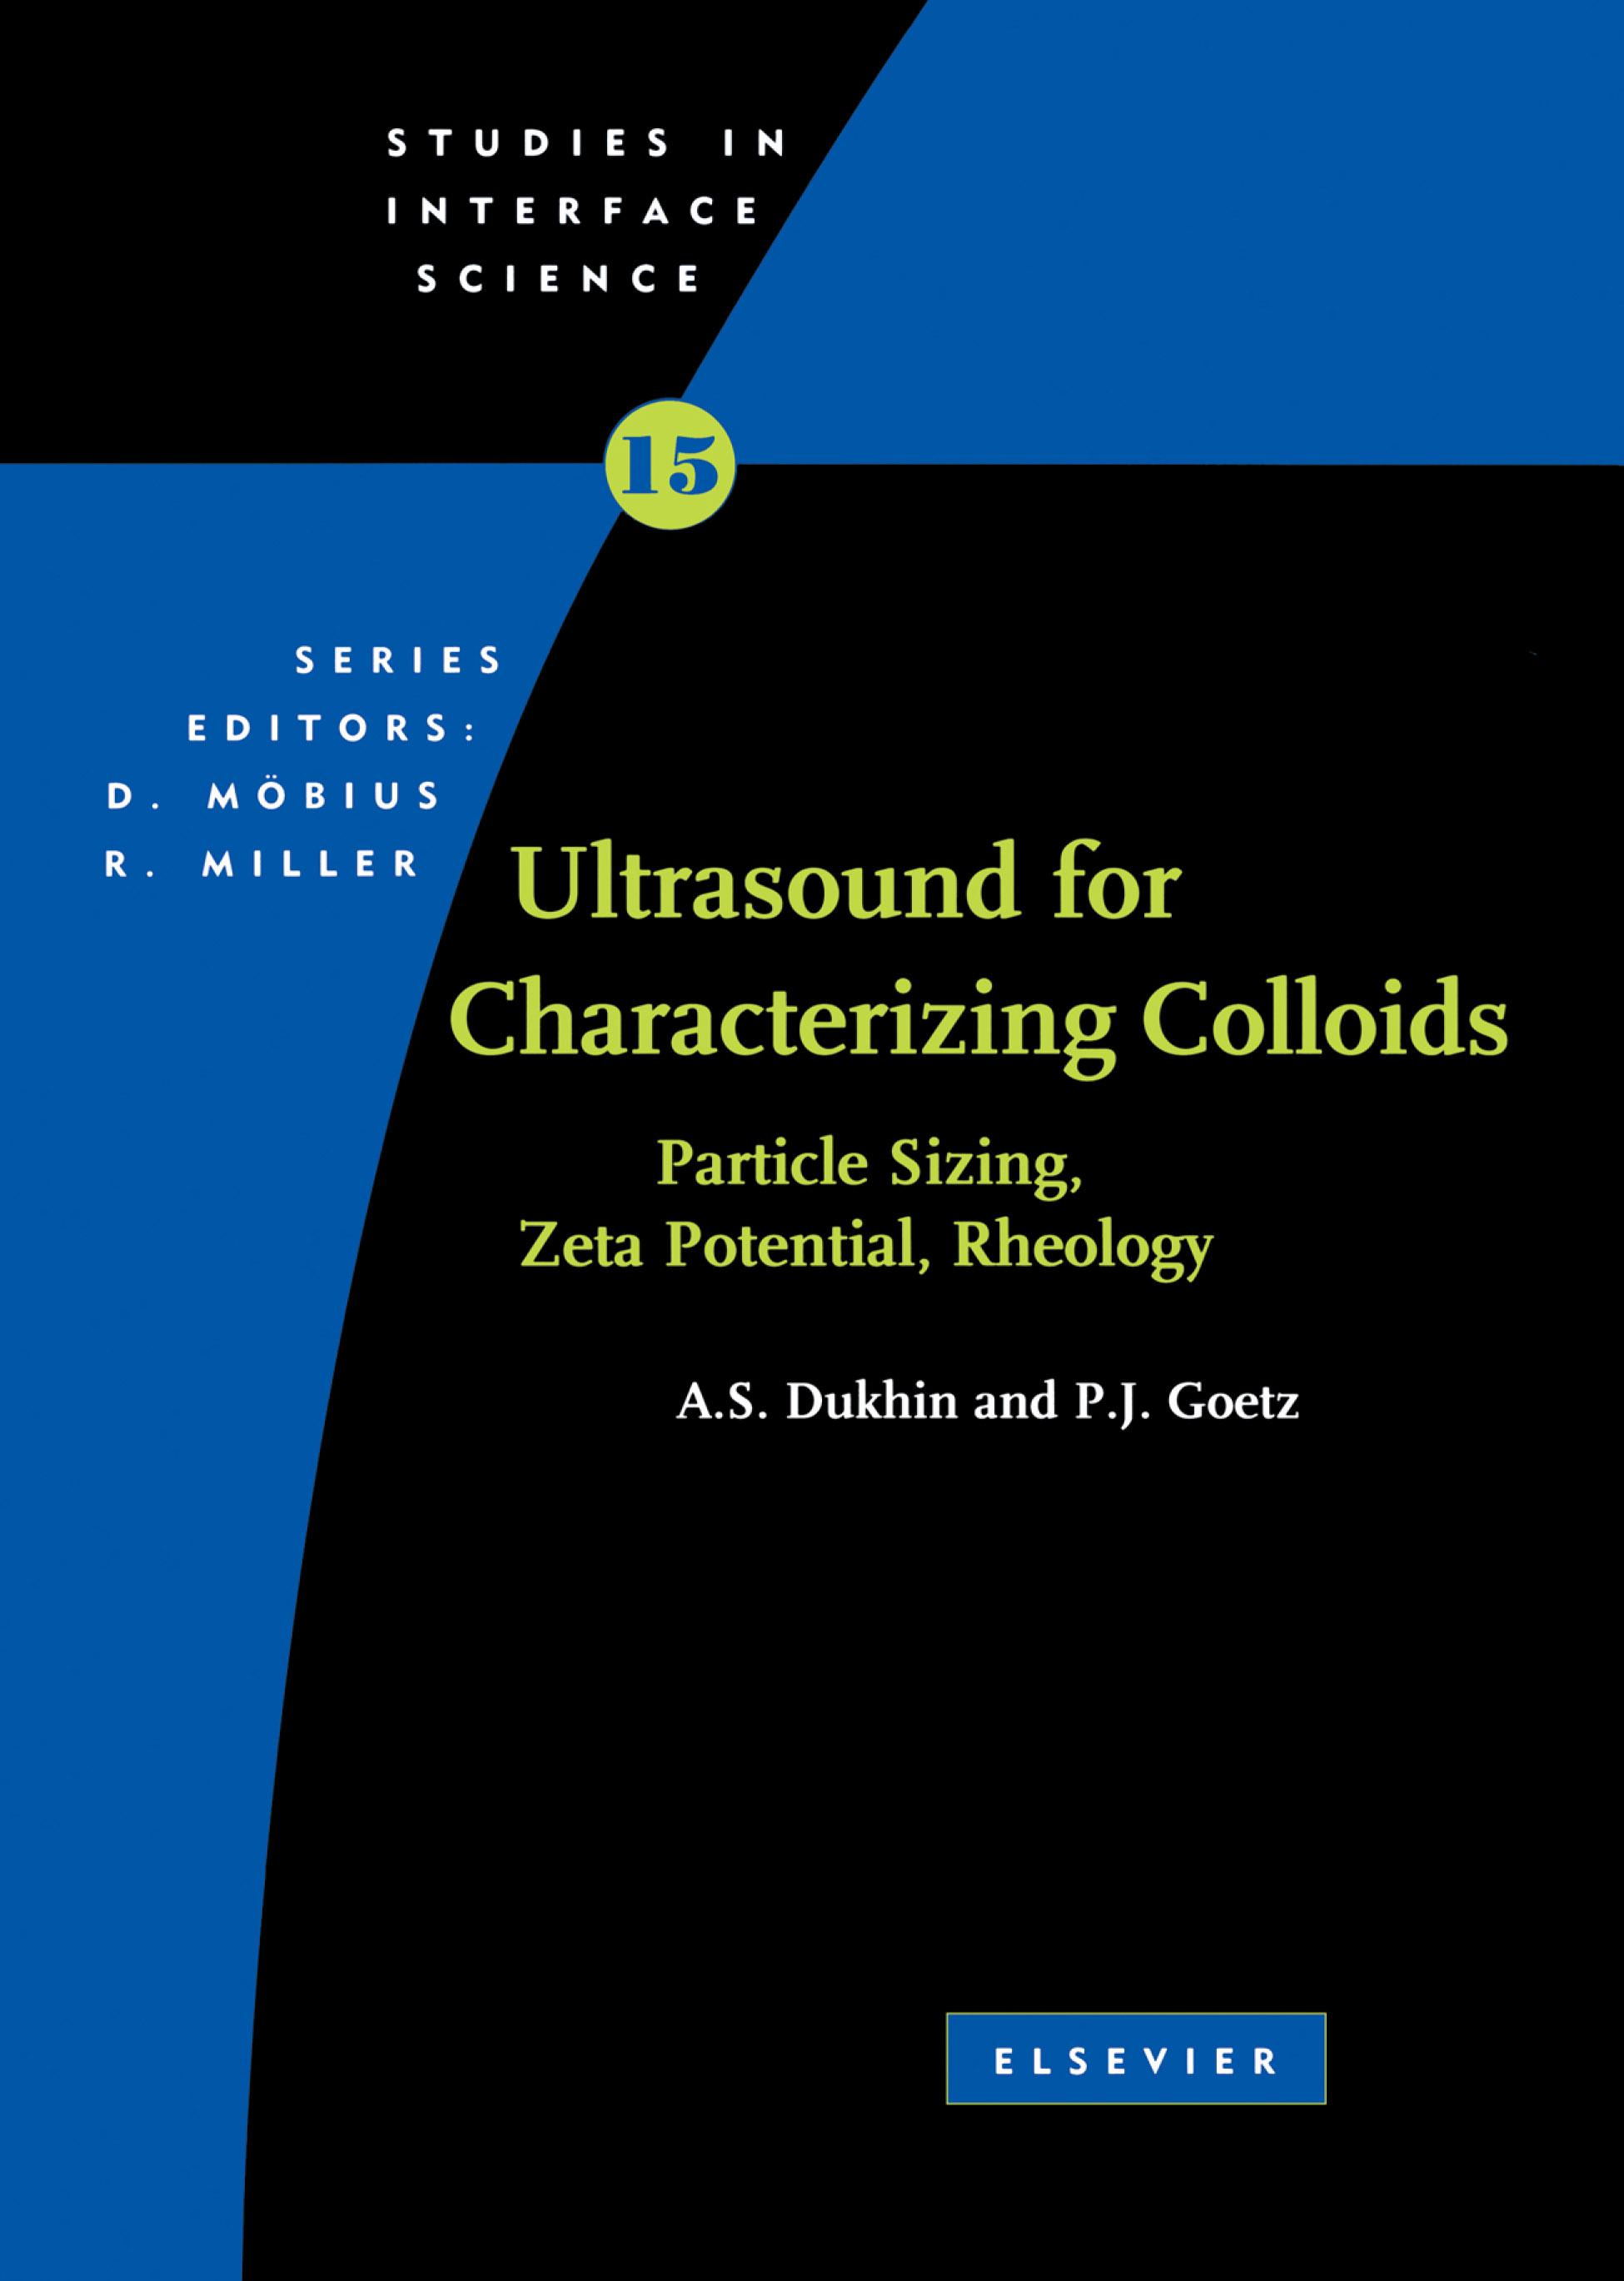 Ultrasound for Characterizing Colloids Particle Sizing, Zeta Potential Rheology